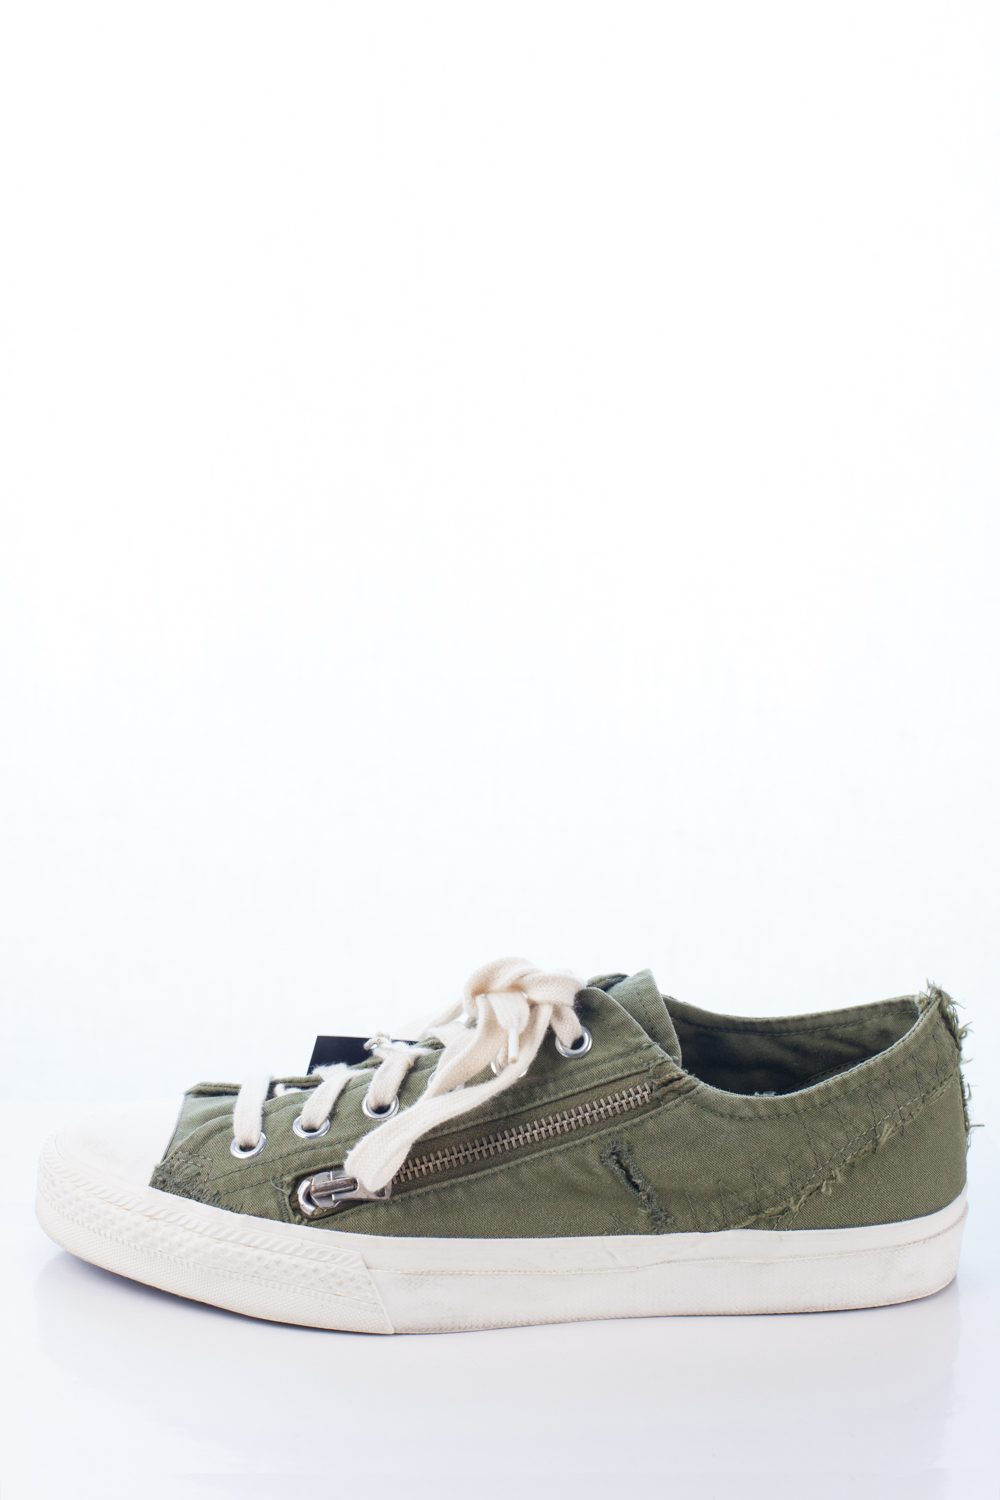 """Frayed Edge """"Taxi Driver"""" Sneakers"""